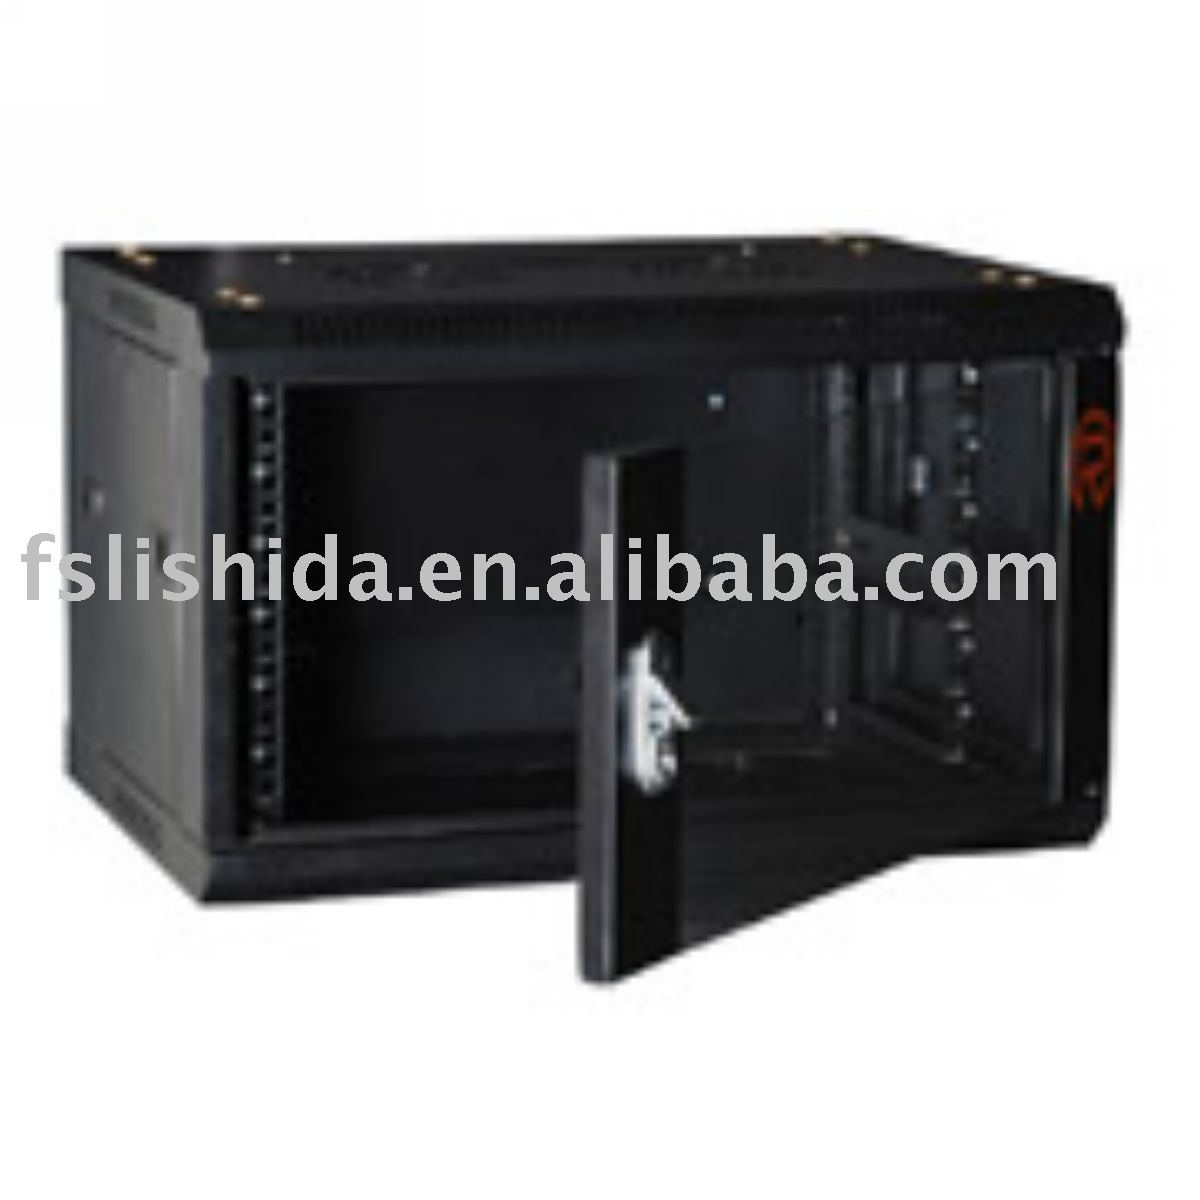 China outdoor Wall mounted network cabinets with lock